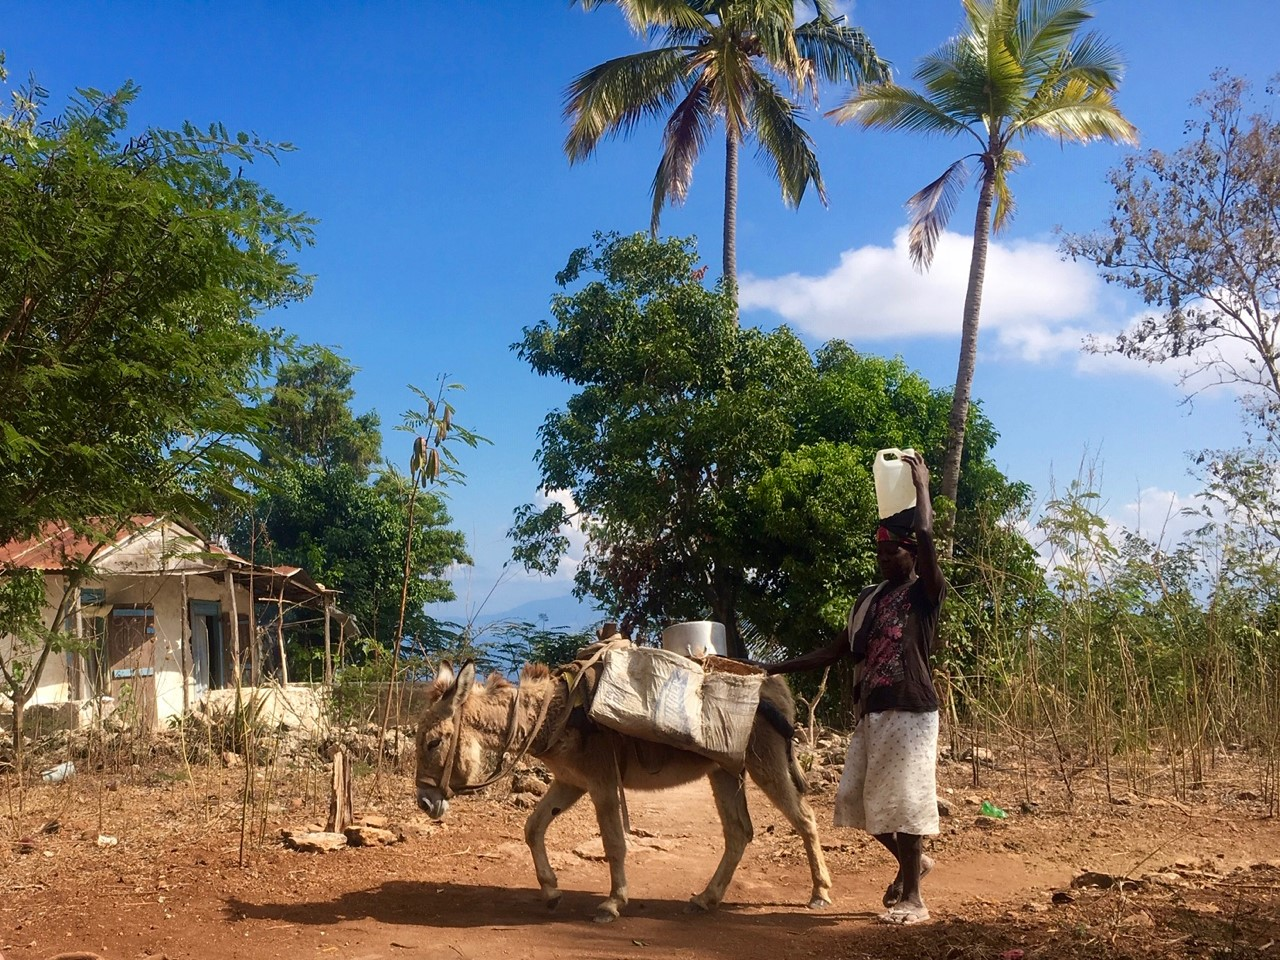 A woman walks home from the market in a rural community. After four months of lockdown, increasing inflation, and insecurity, the people of rural Haiti are suffering more than ever. (Photo by Cindy Corell)